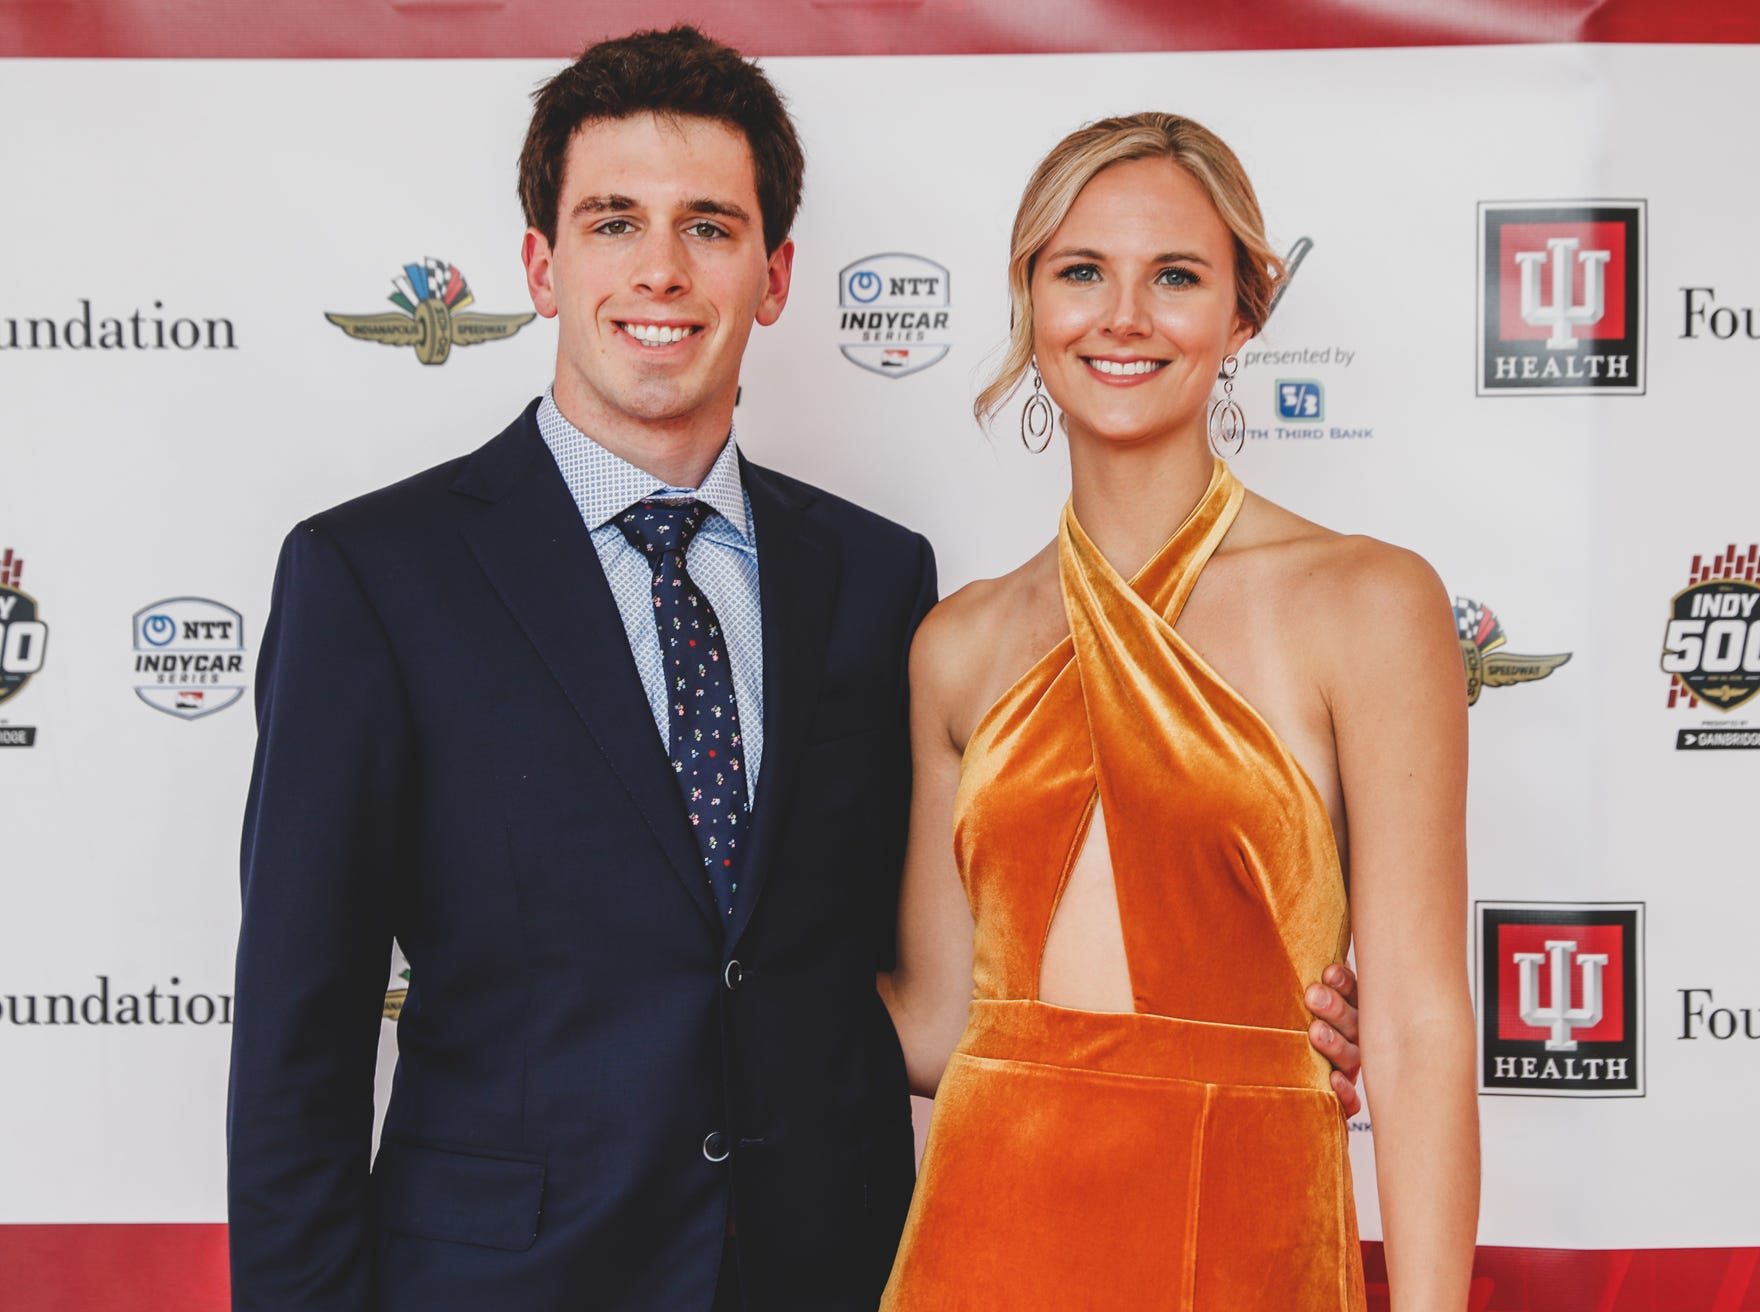 IndyCar driver Dalton Kellet and Nicole Nicole Westra walk the red carpet at the Rev Indy fundraiser, held at the Indianapolis Motor Speedway on Saturday, May 4, 2019. Funds raised support the IU Health Foundation statewide and the IU Health Emergency Medical Center at IMS.